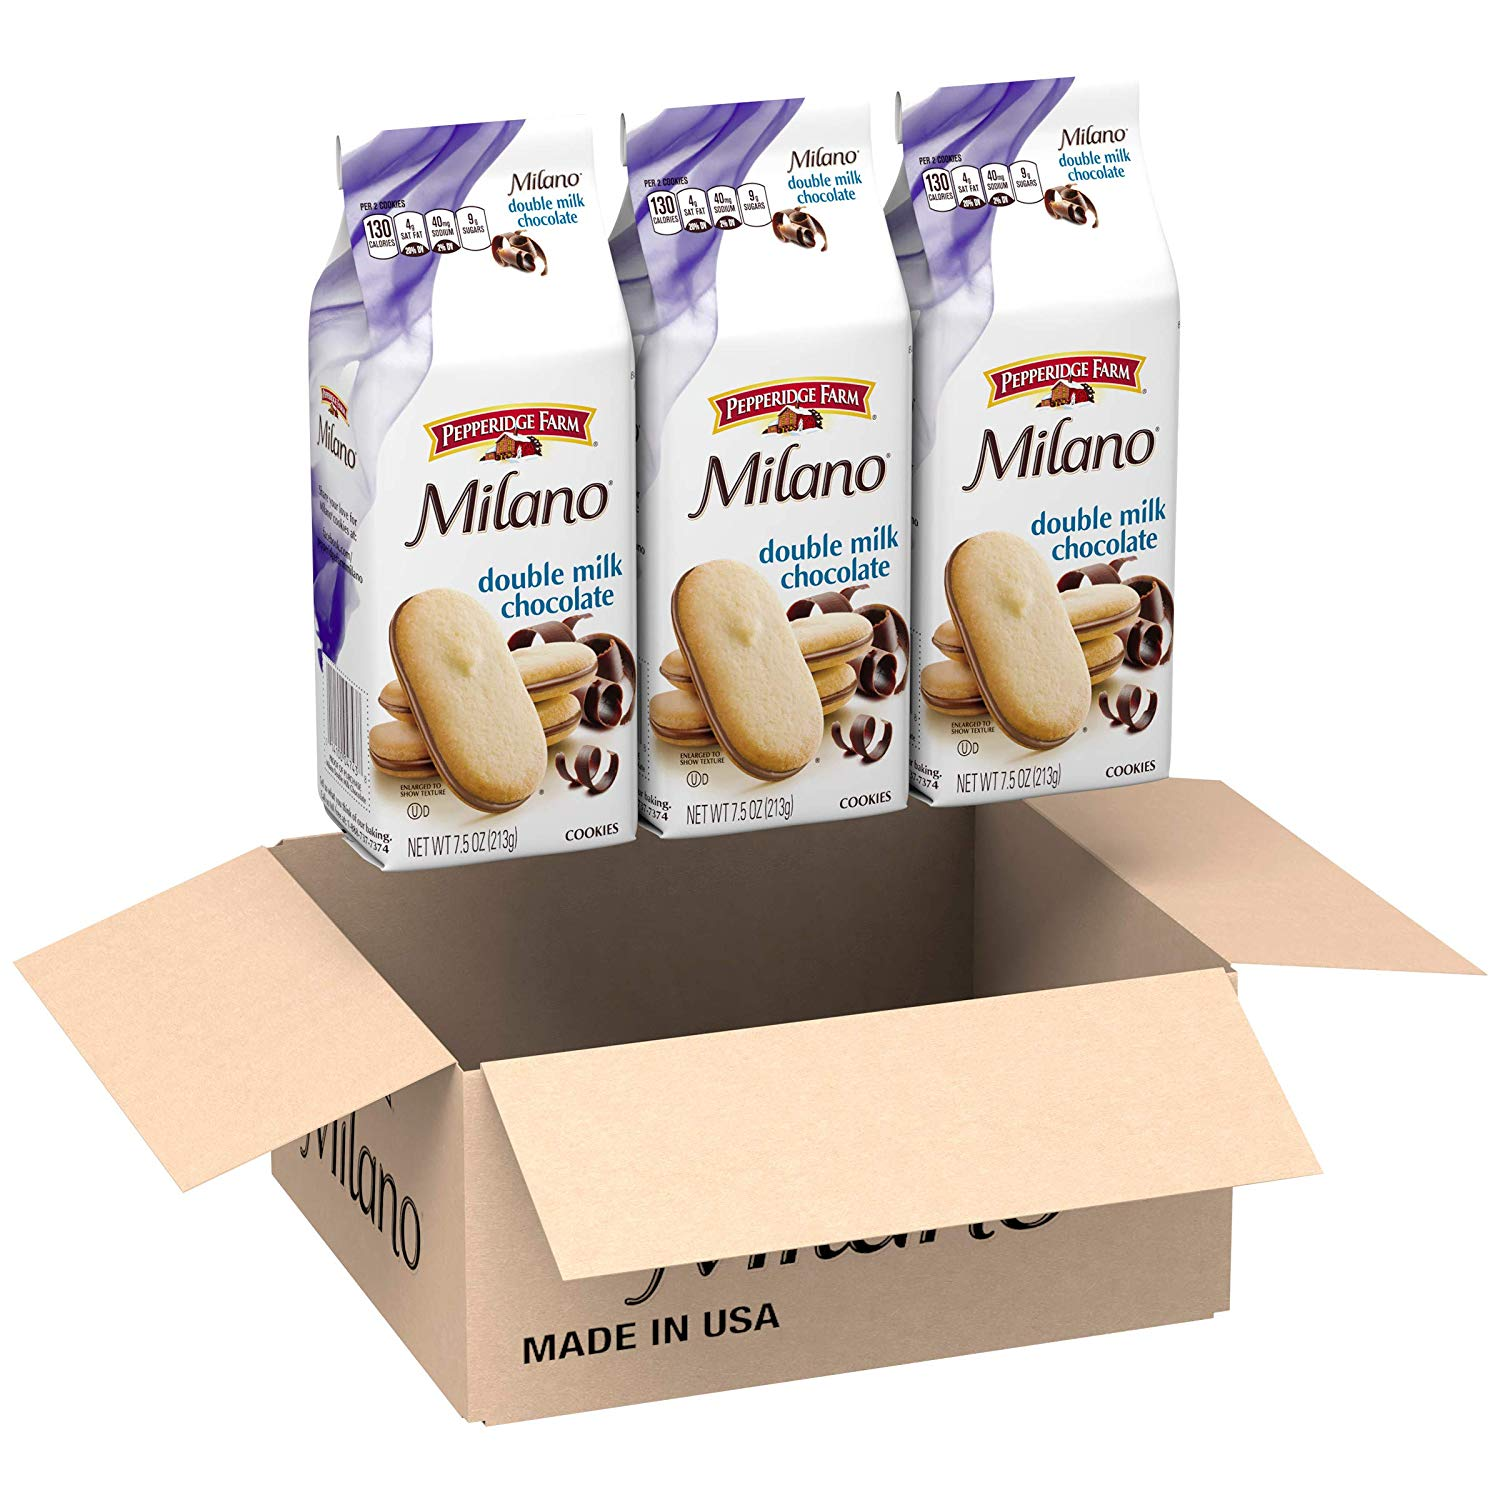 3-Pack 7.5oz Pepperidge Farm Milano Cookies (Double Milk Chocolate)